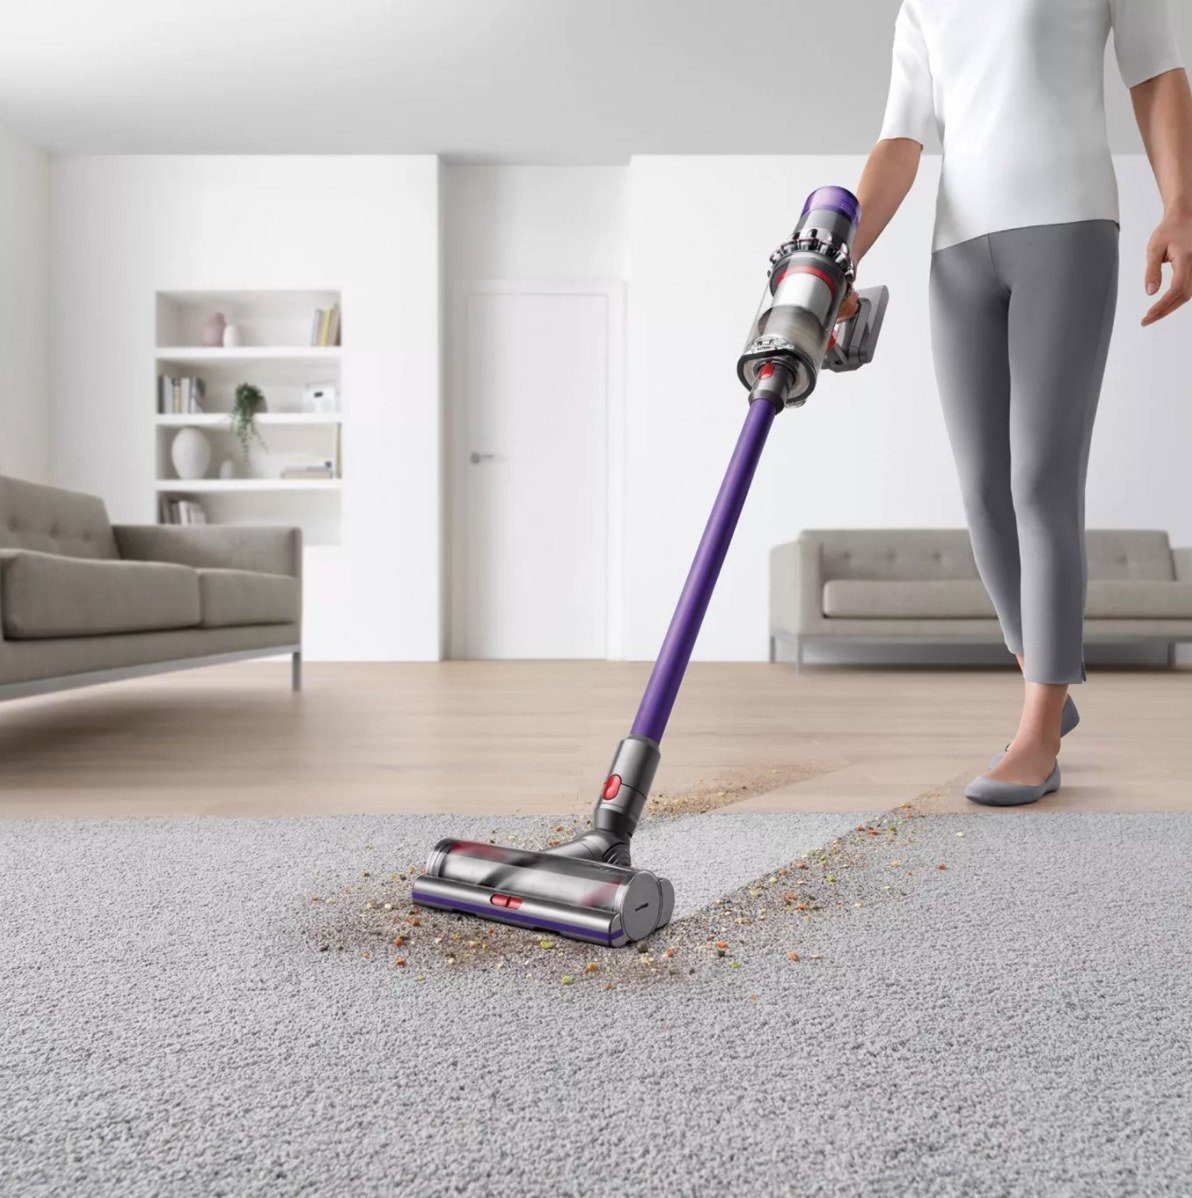 Dyson being used to vacuum up a mess on a carpet